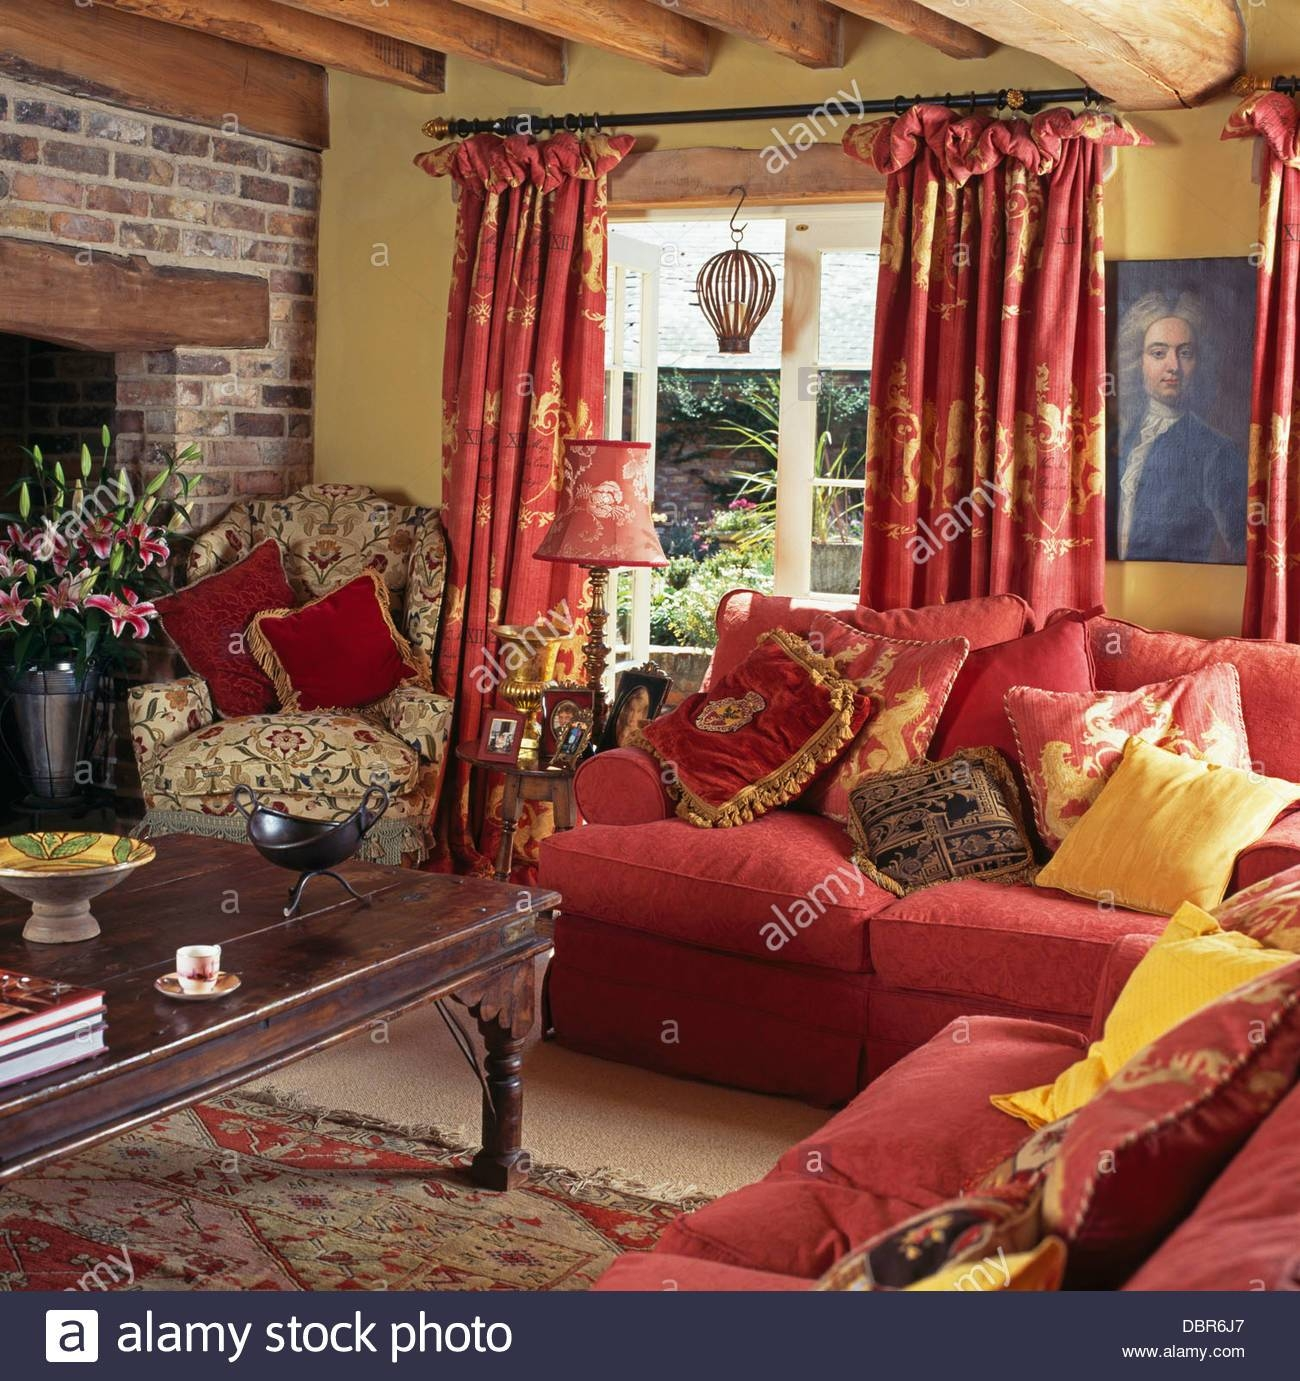 Sofas Armchairs In Living Room Stock Photos & Sofas Armchairs In pertaining to Yellow Chintz Sofas (Image 27 of 30)